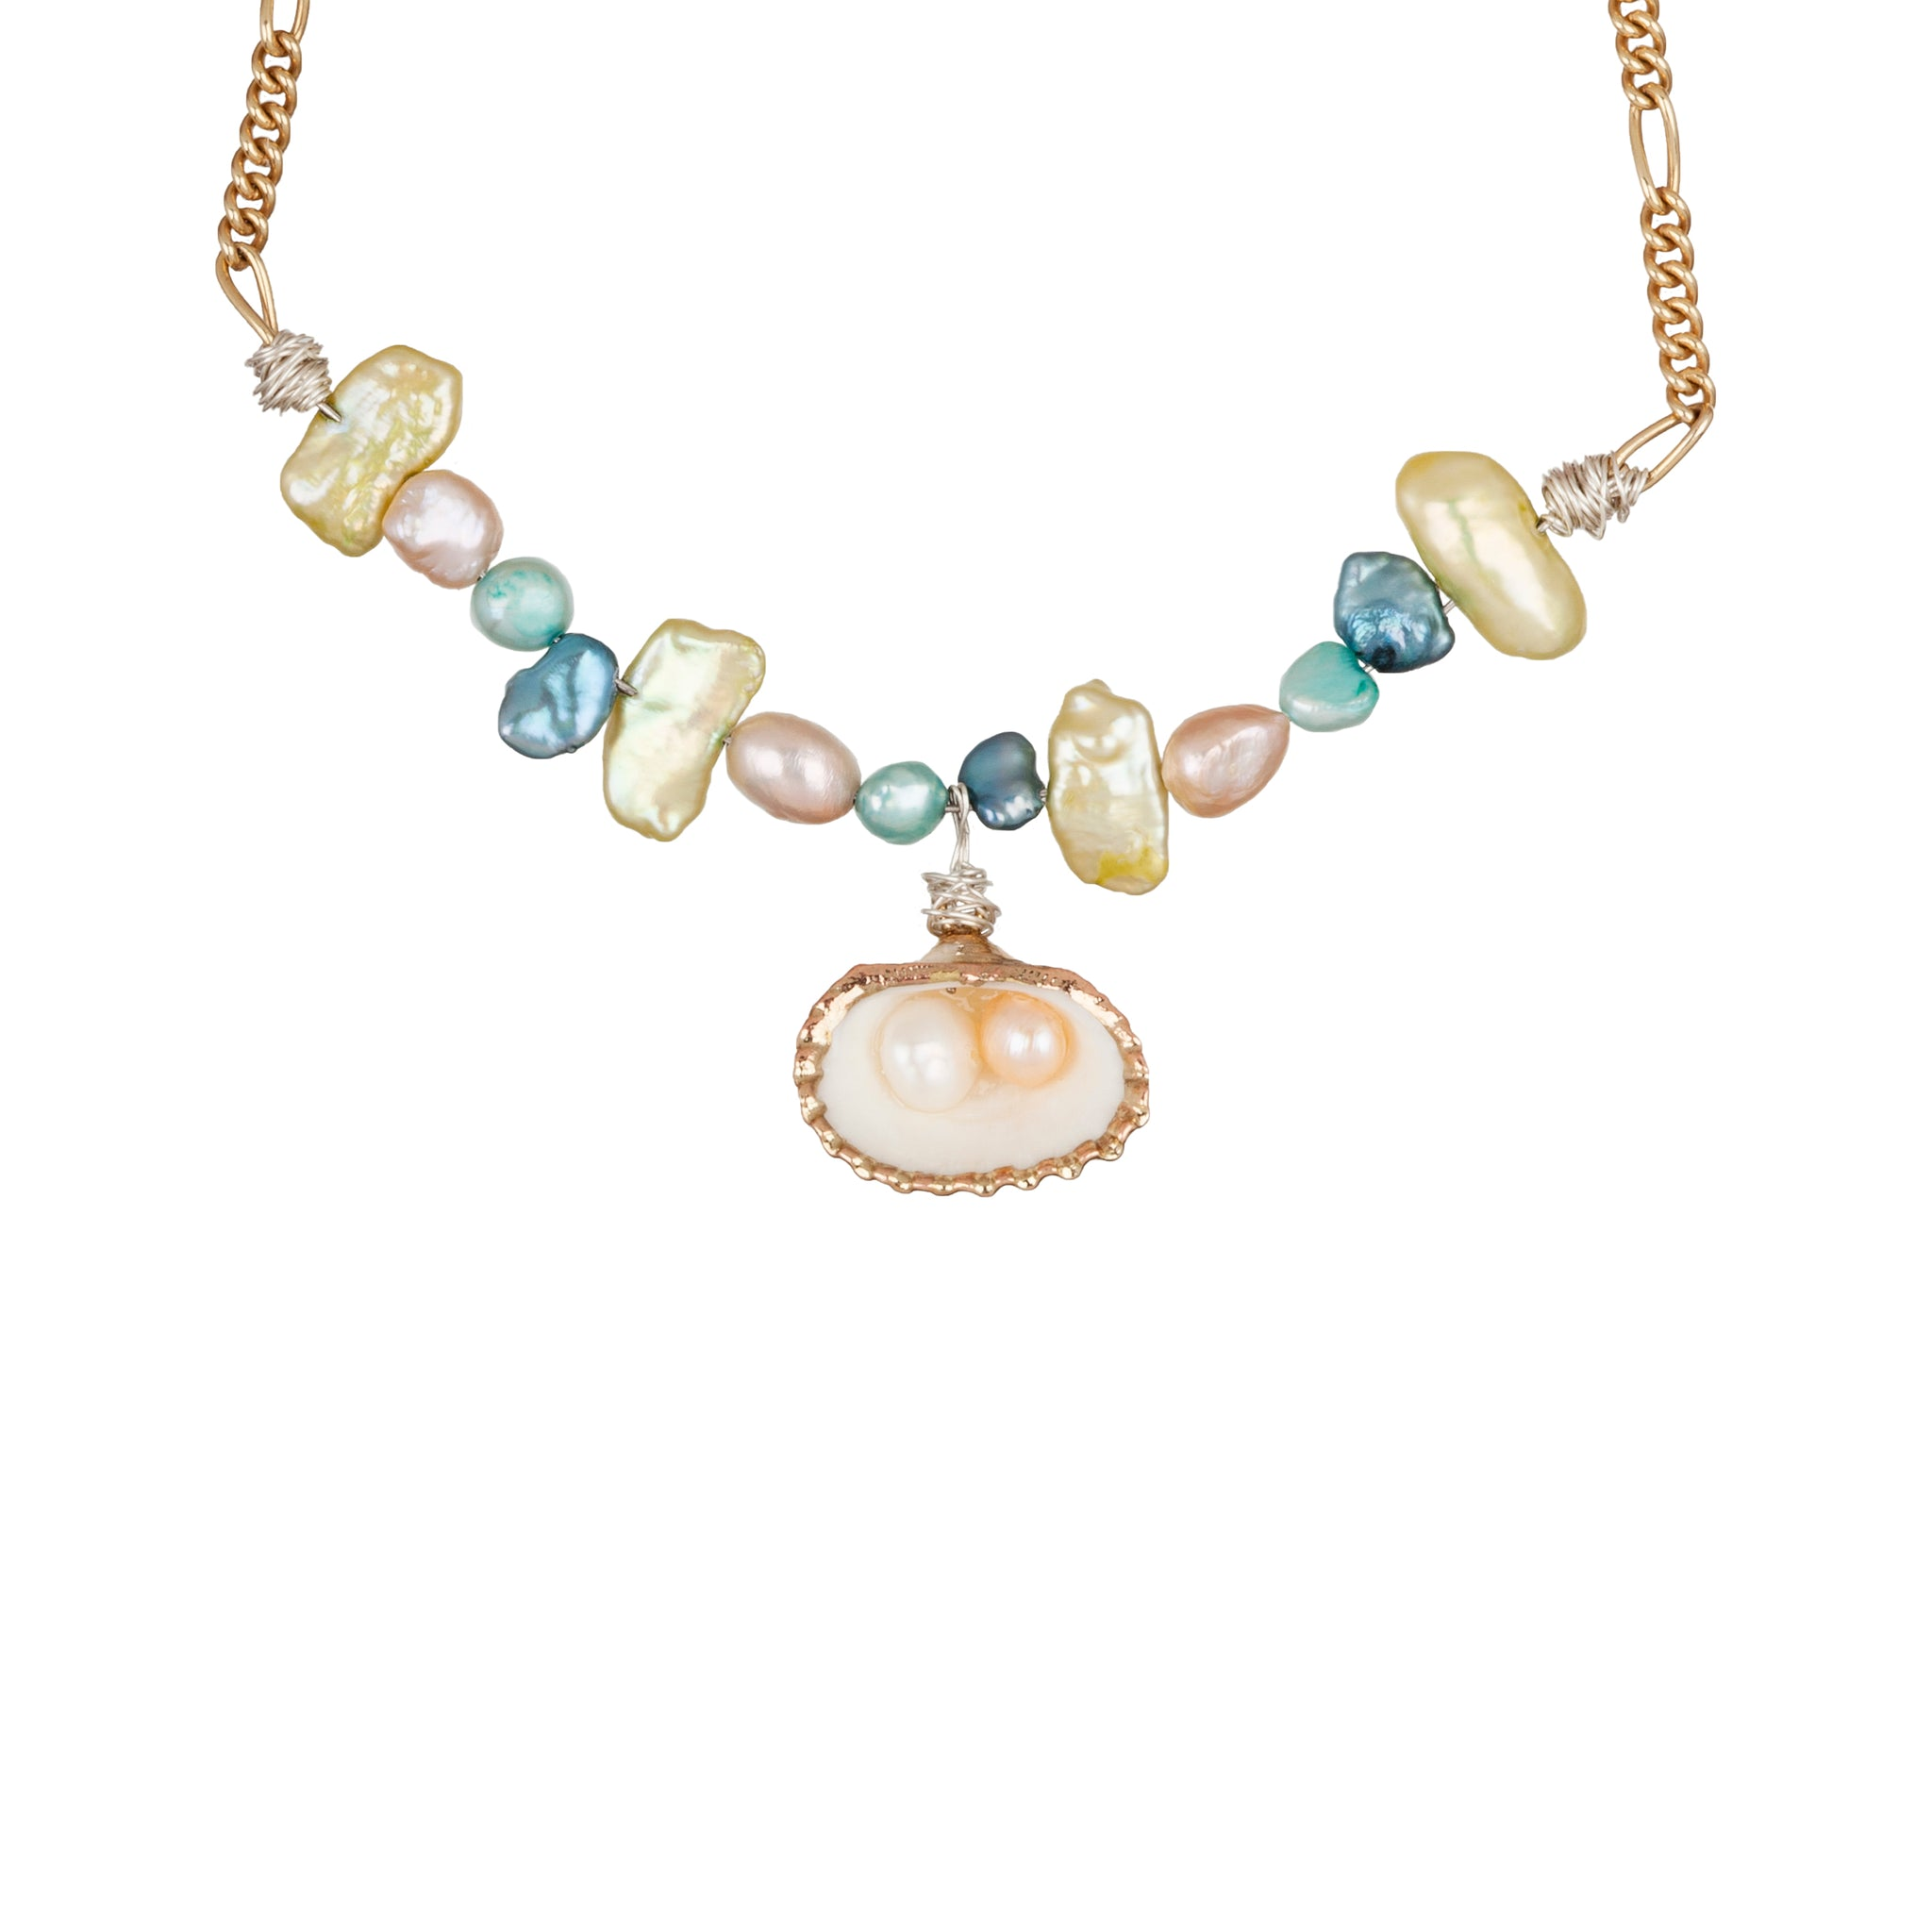 WALD BERLIN - LADY MARMALADE PEARL SHELL NECKLACE